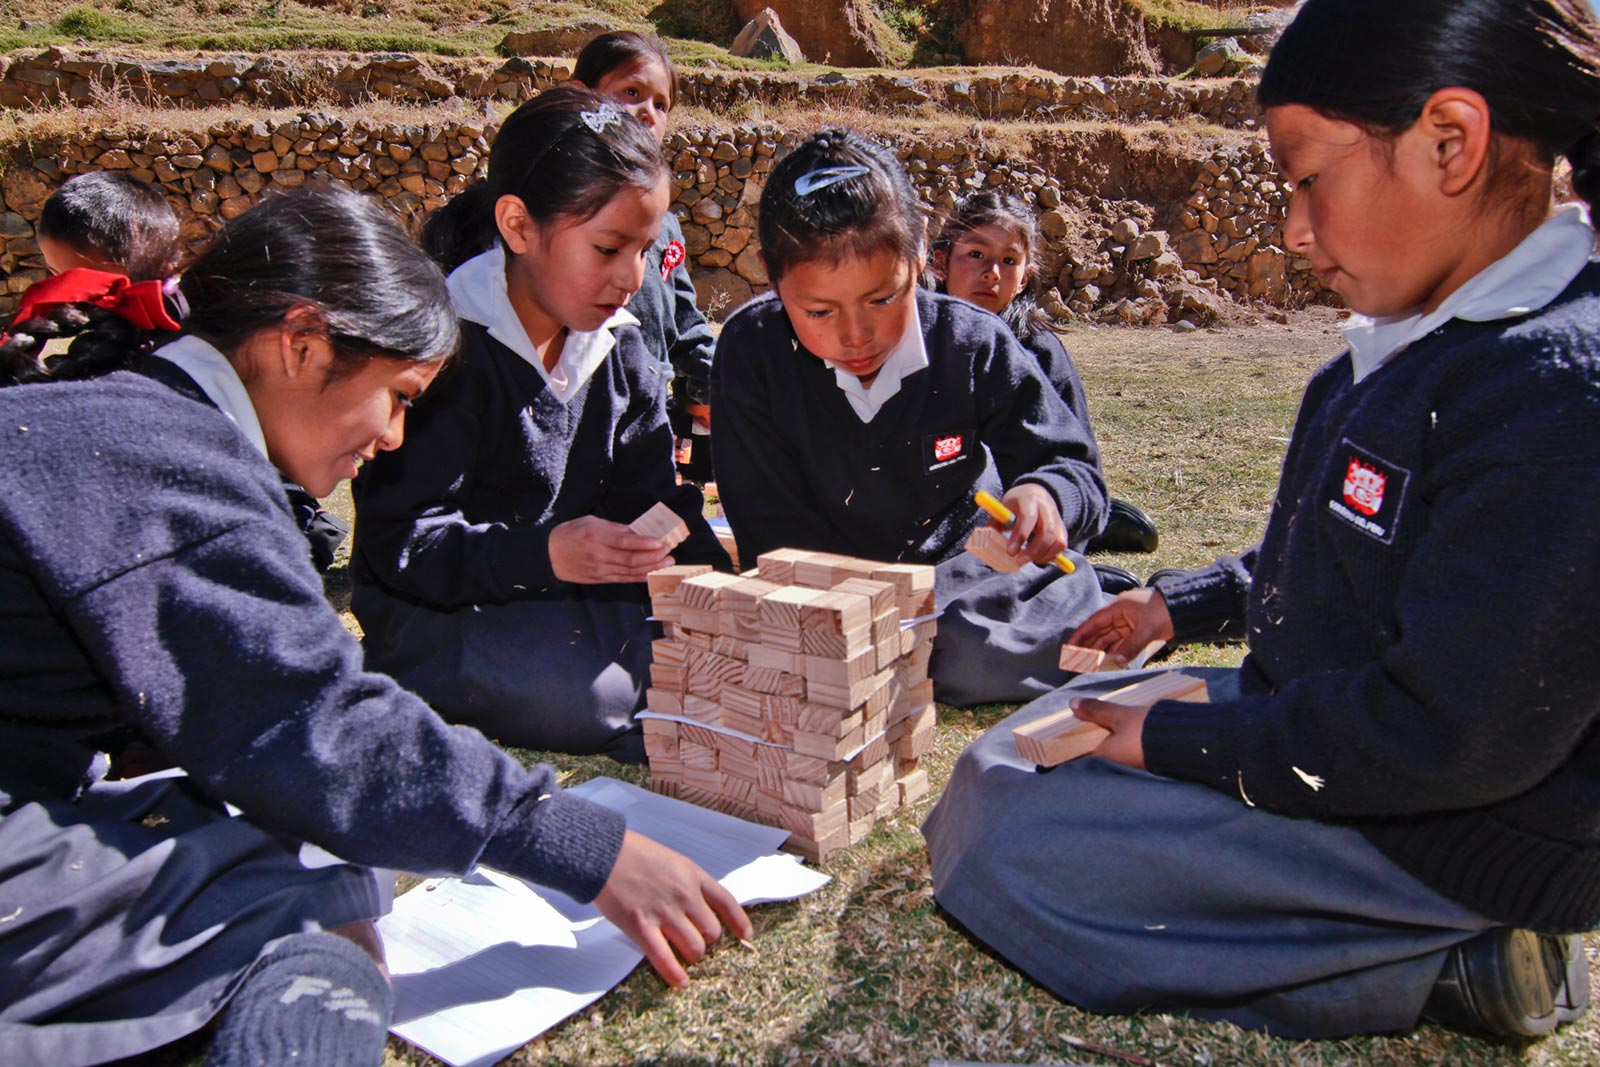 School children learn about the physics of earth shaking and safe construction as a part of training an entire community to better prepare for earthquakes. Image Credit: David Hermoza